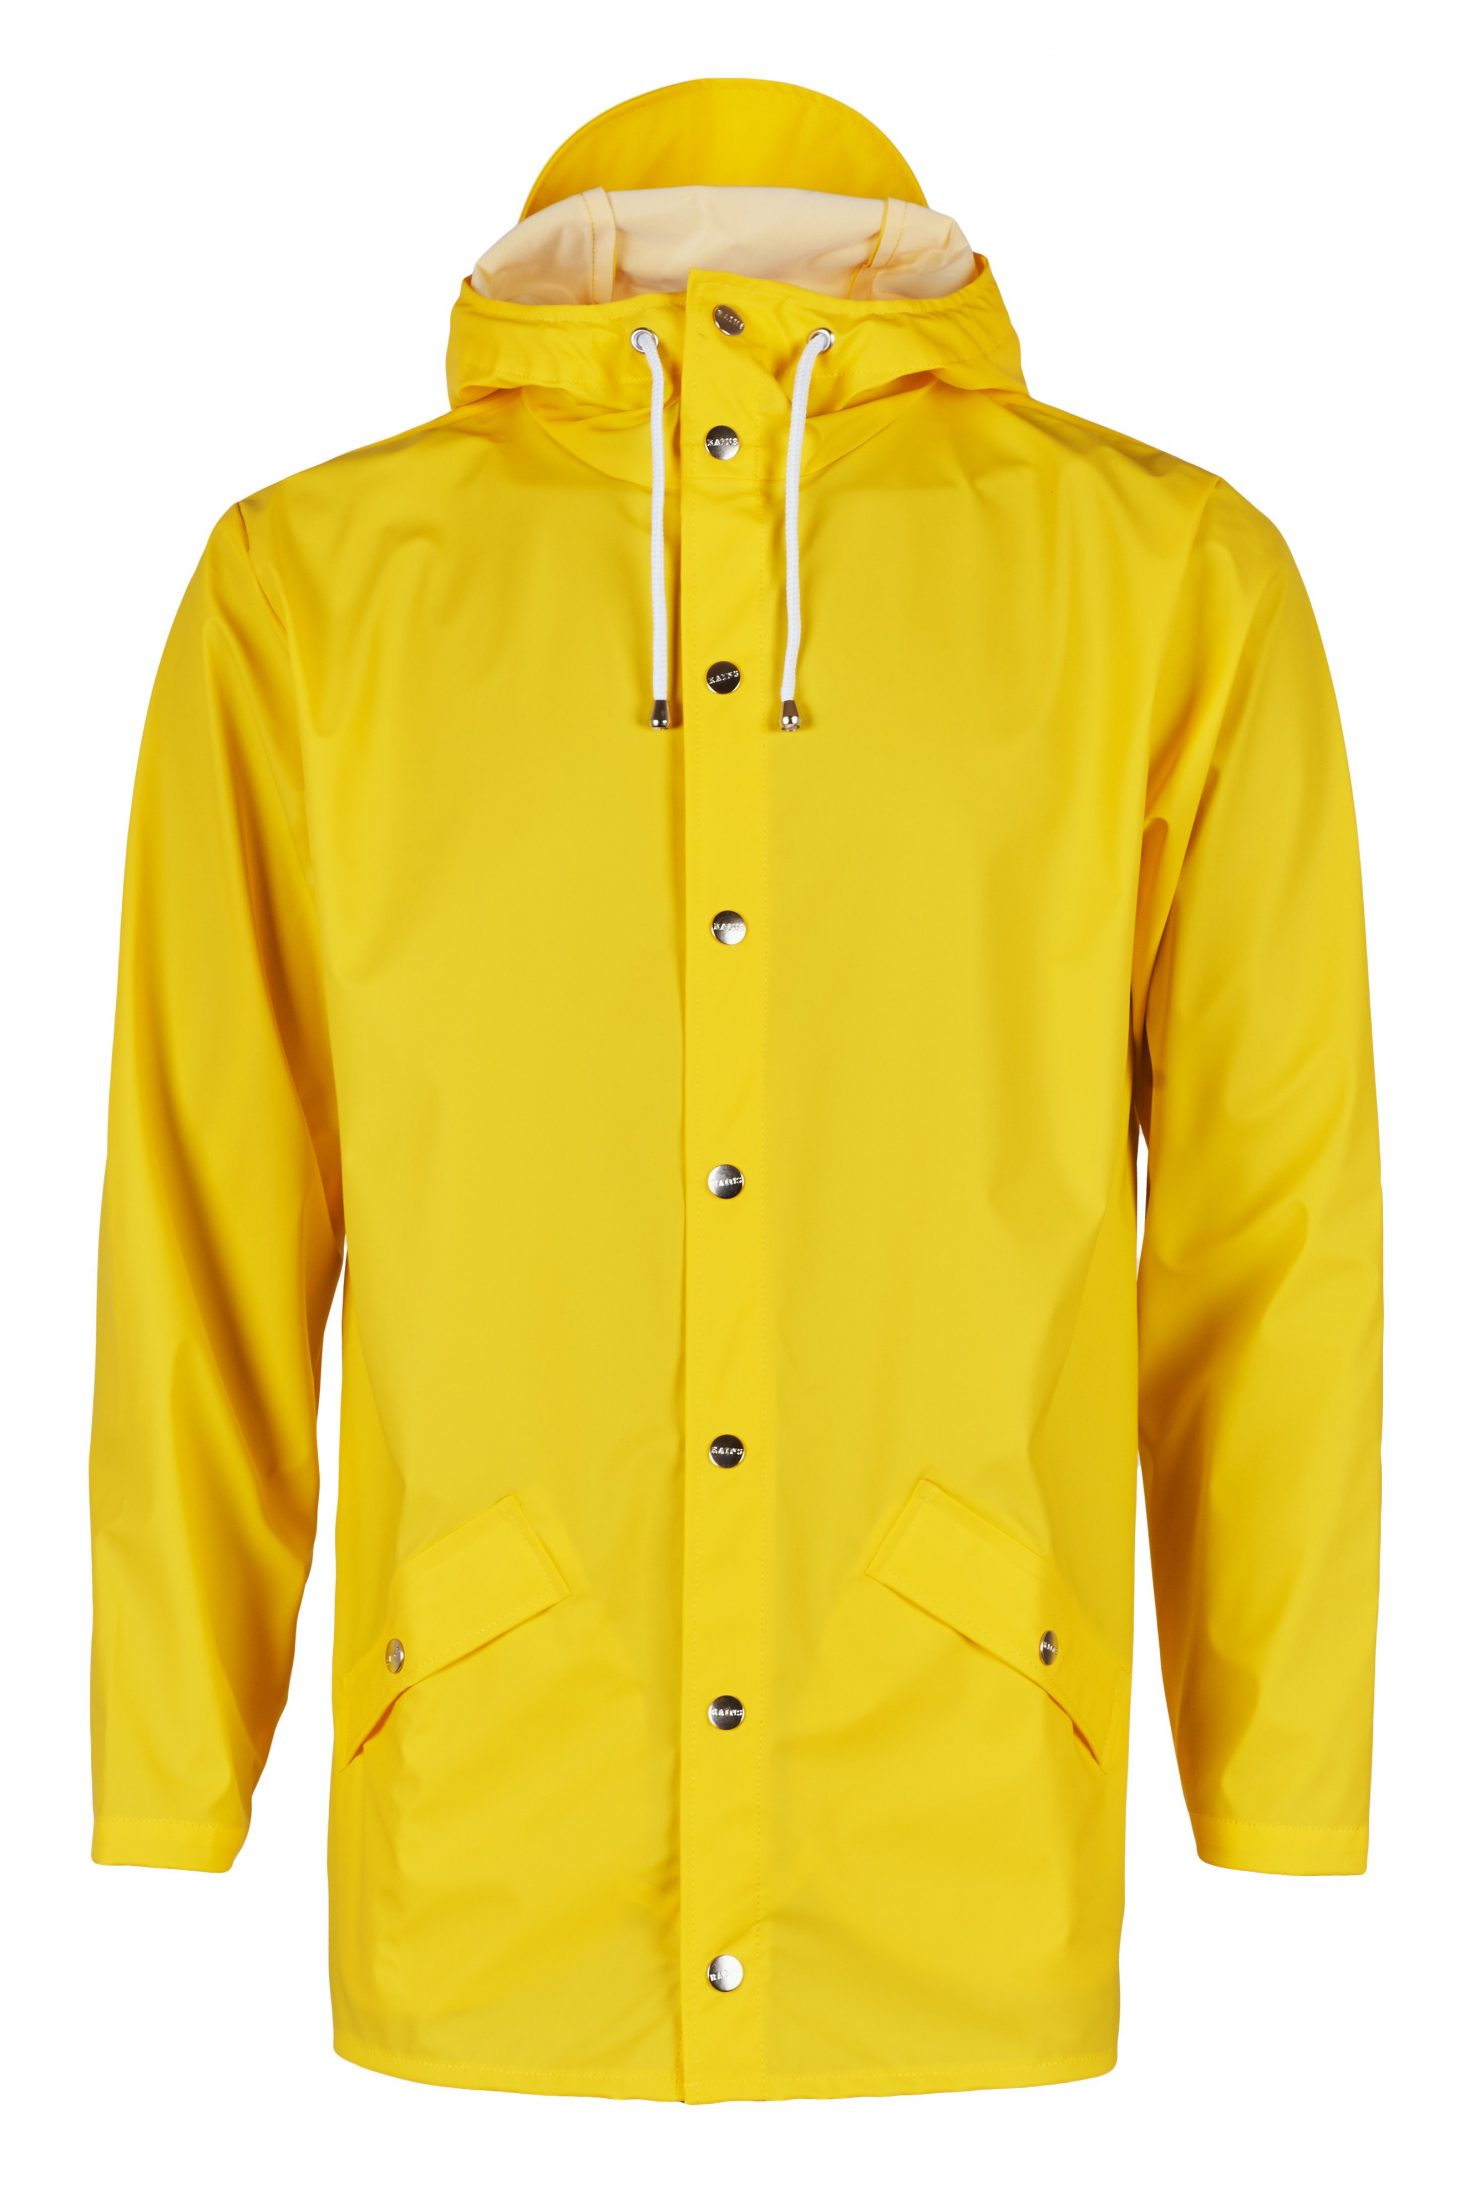 Rains Unisex Jacket - Yellow